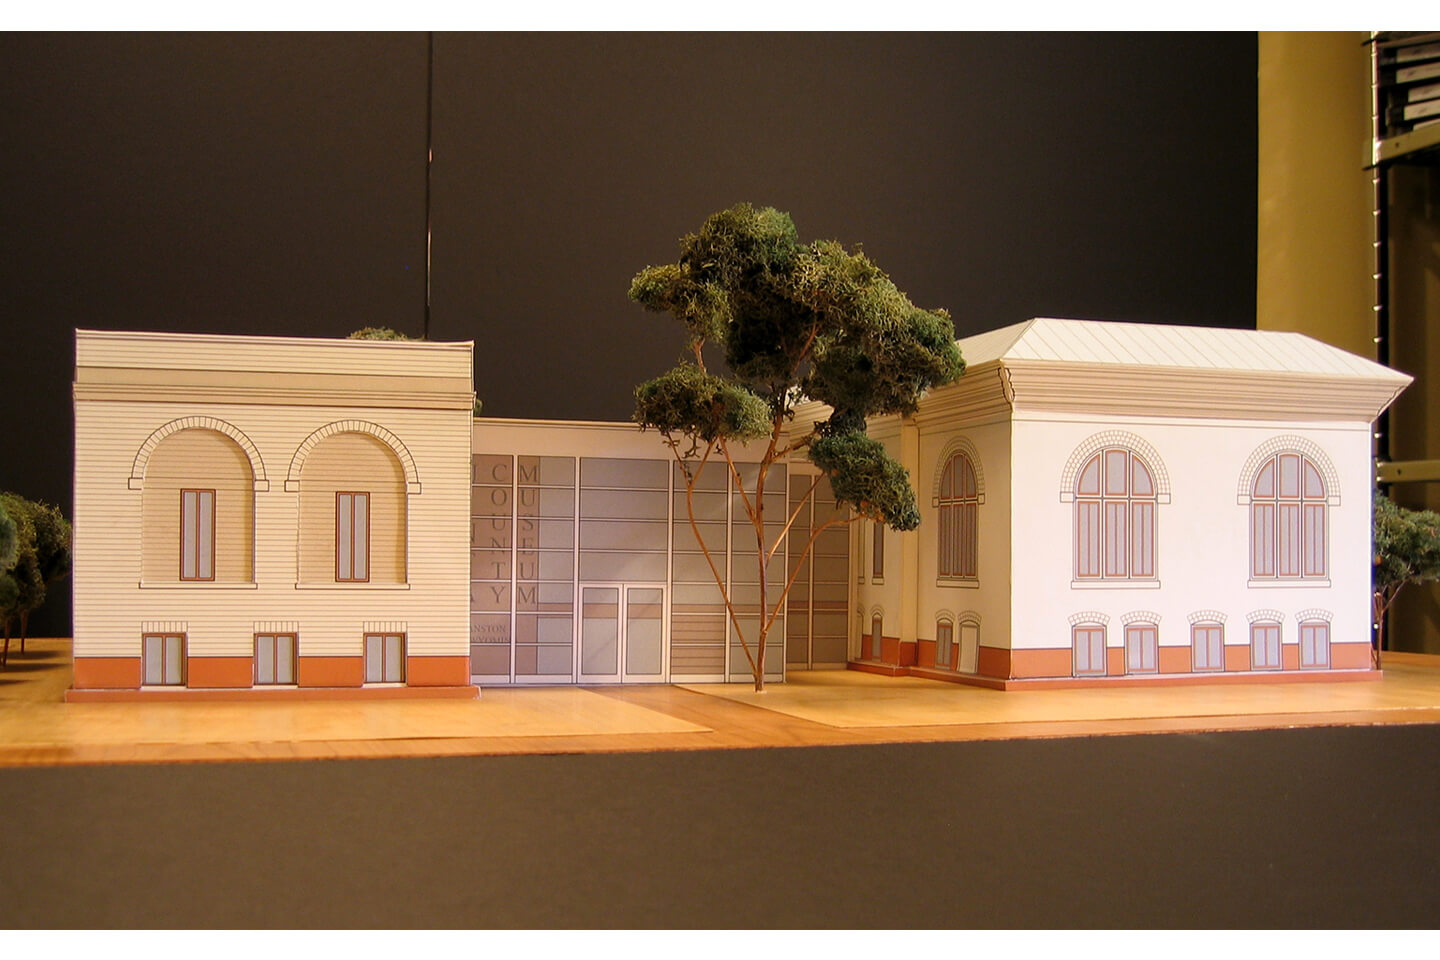 3D model of the museum addition